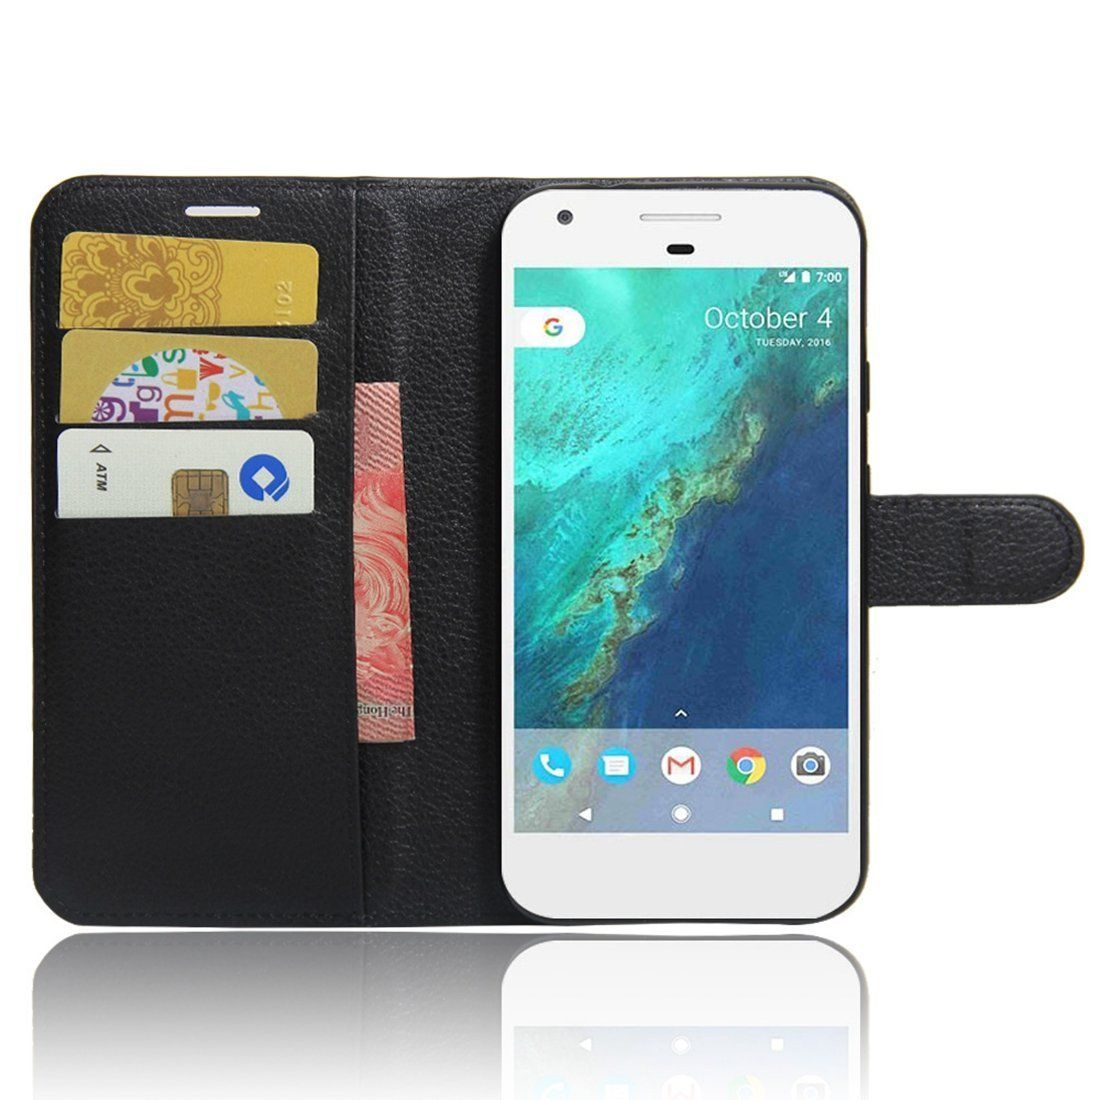 Google Pixel 2 Case Cover, Wallet Flip PU Leather Case